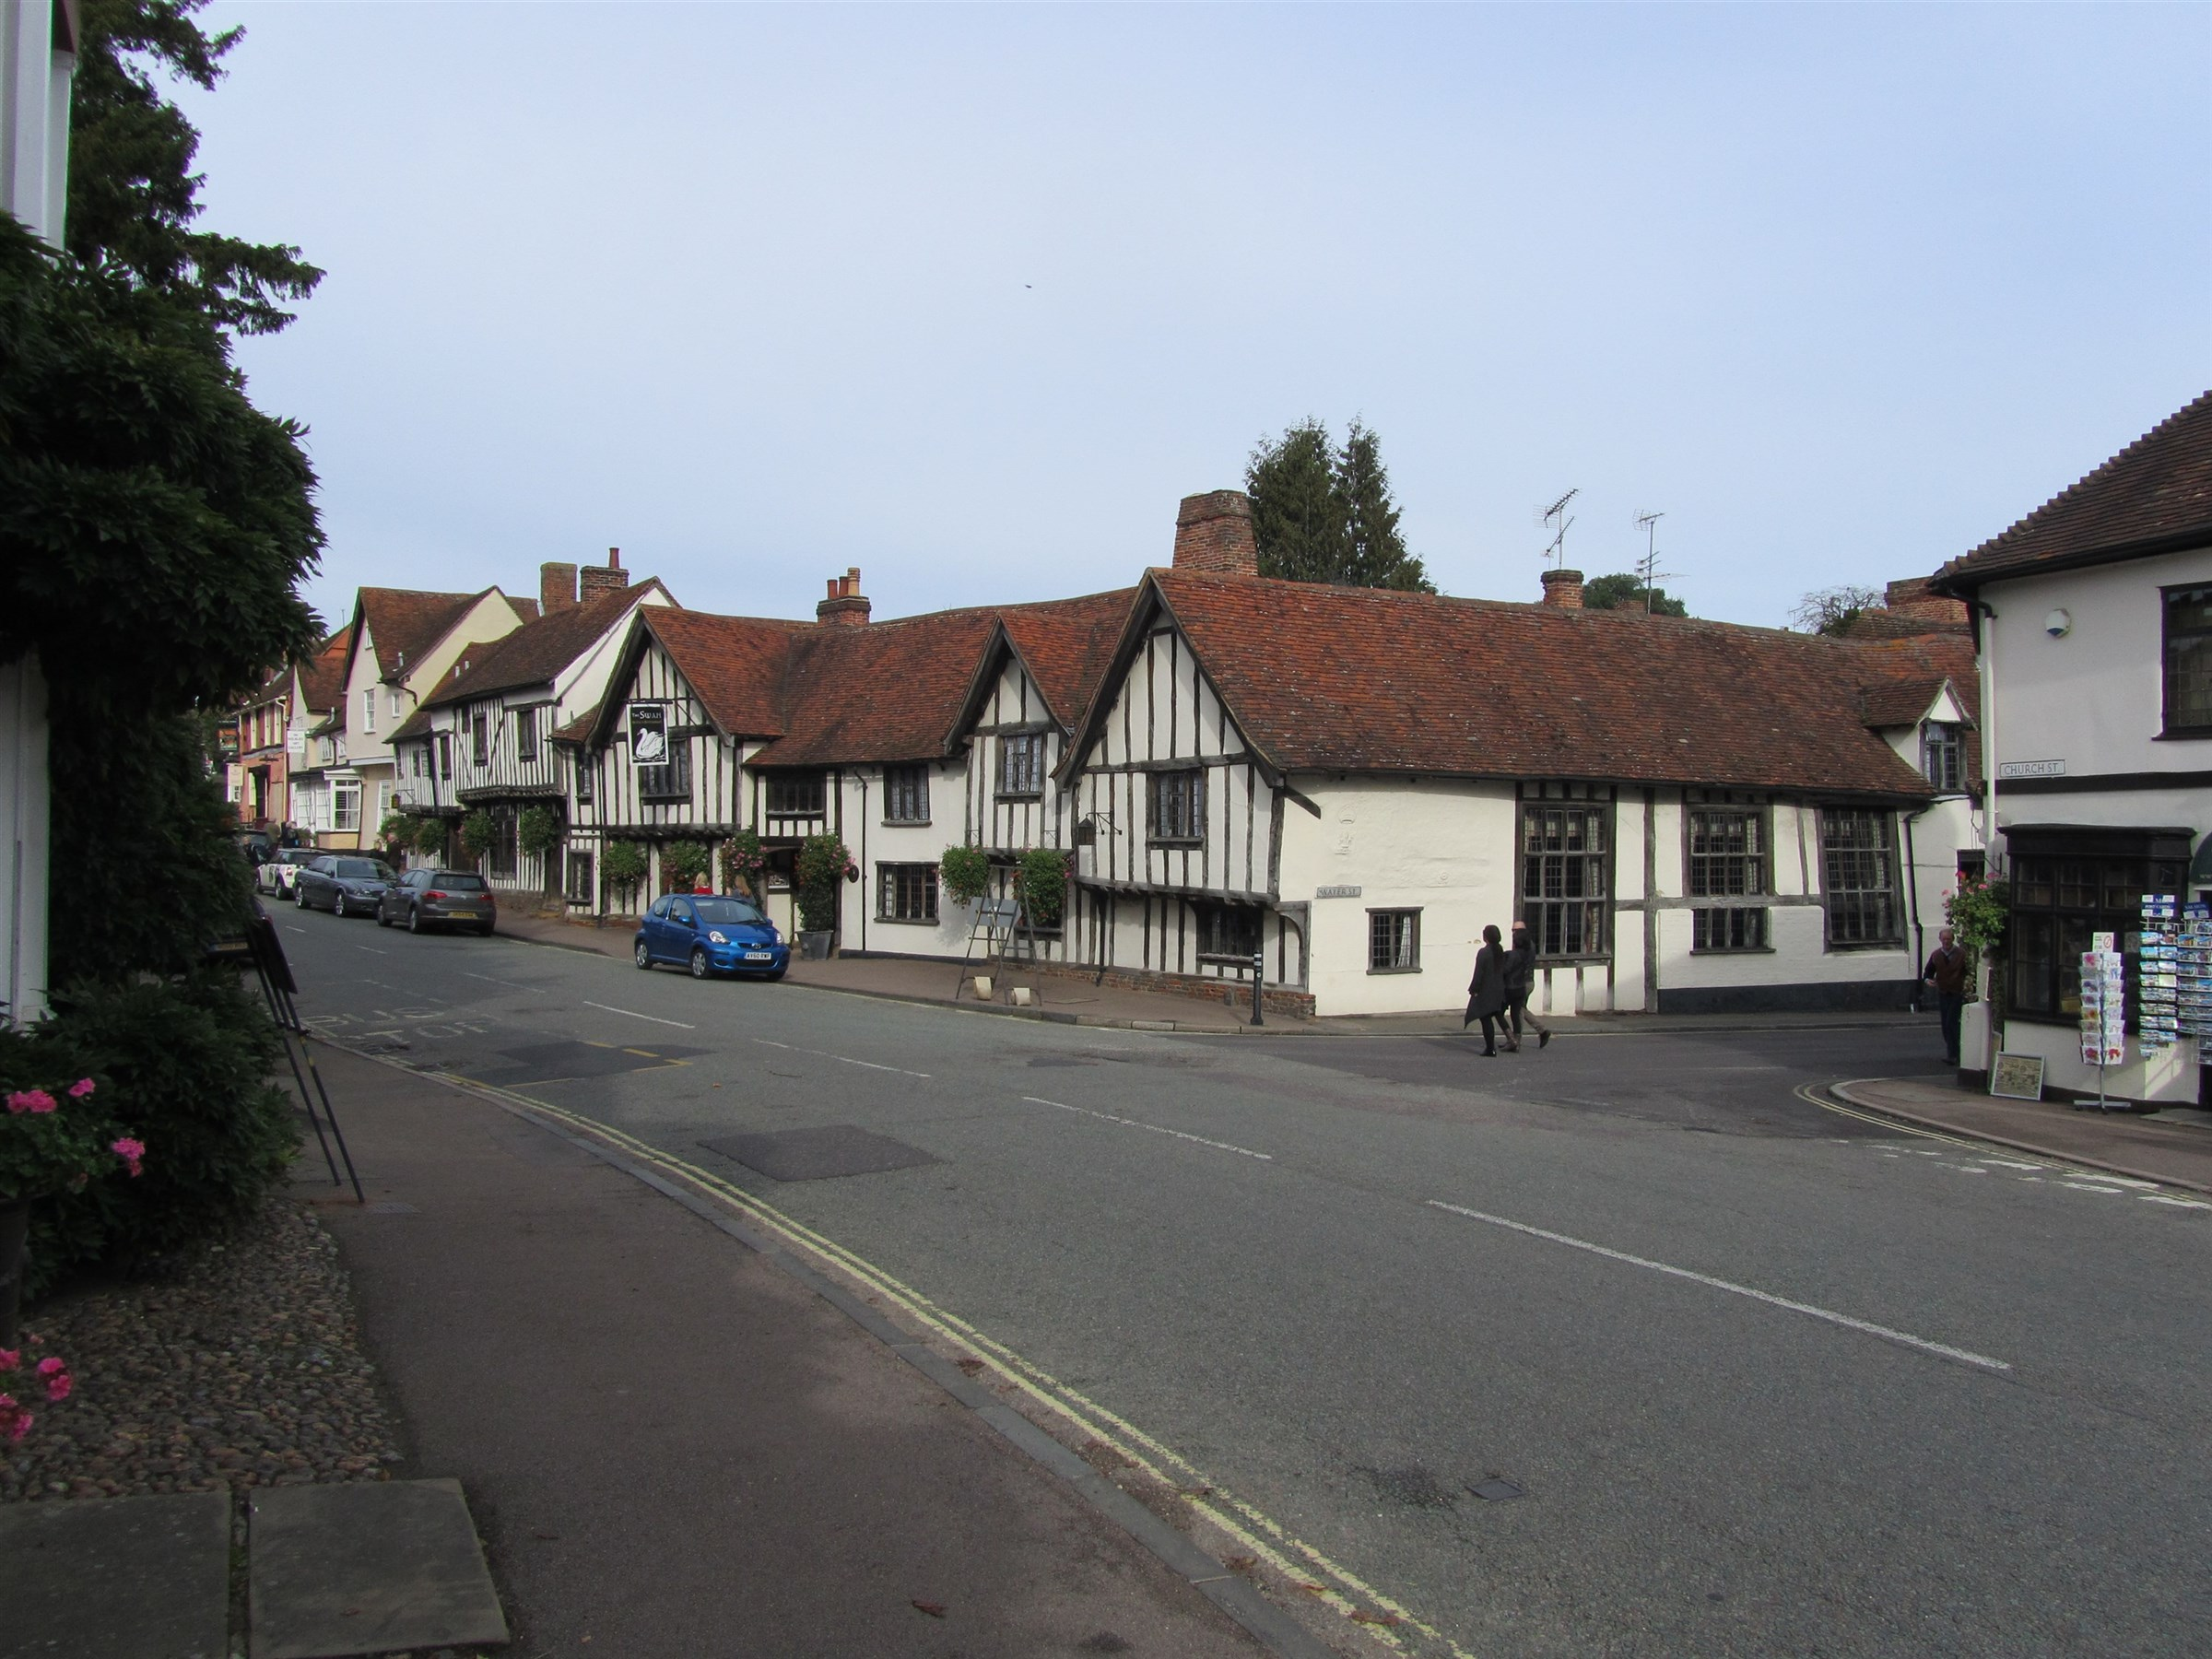 Case Study (Excavation): The medieval wool industry of Lavenham, Suffolk